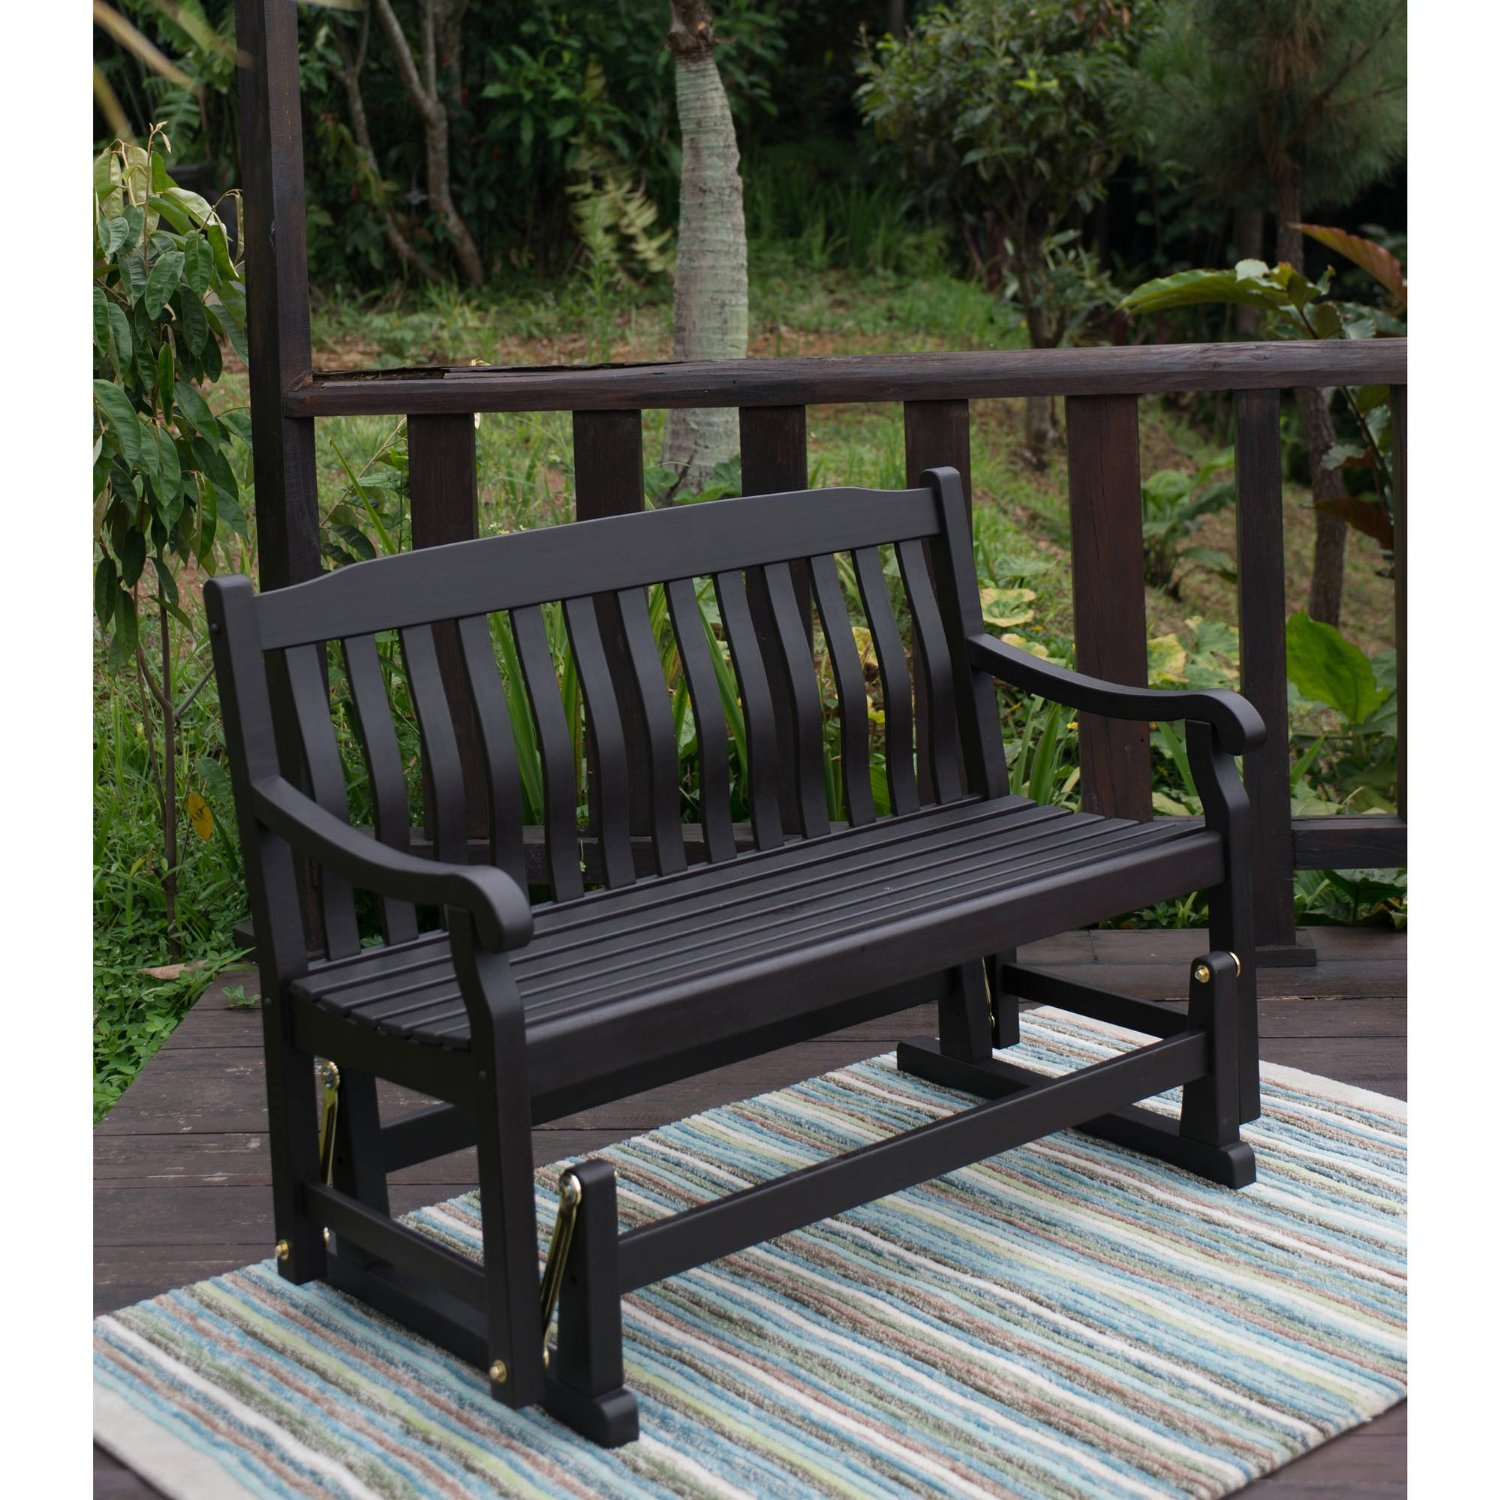 Cheap Patio Furniture Glider Bench, Find Patio Furniture With Rocking Love Seats Glider Swing Benches With Sturdy Frame (View 25 of 25)